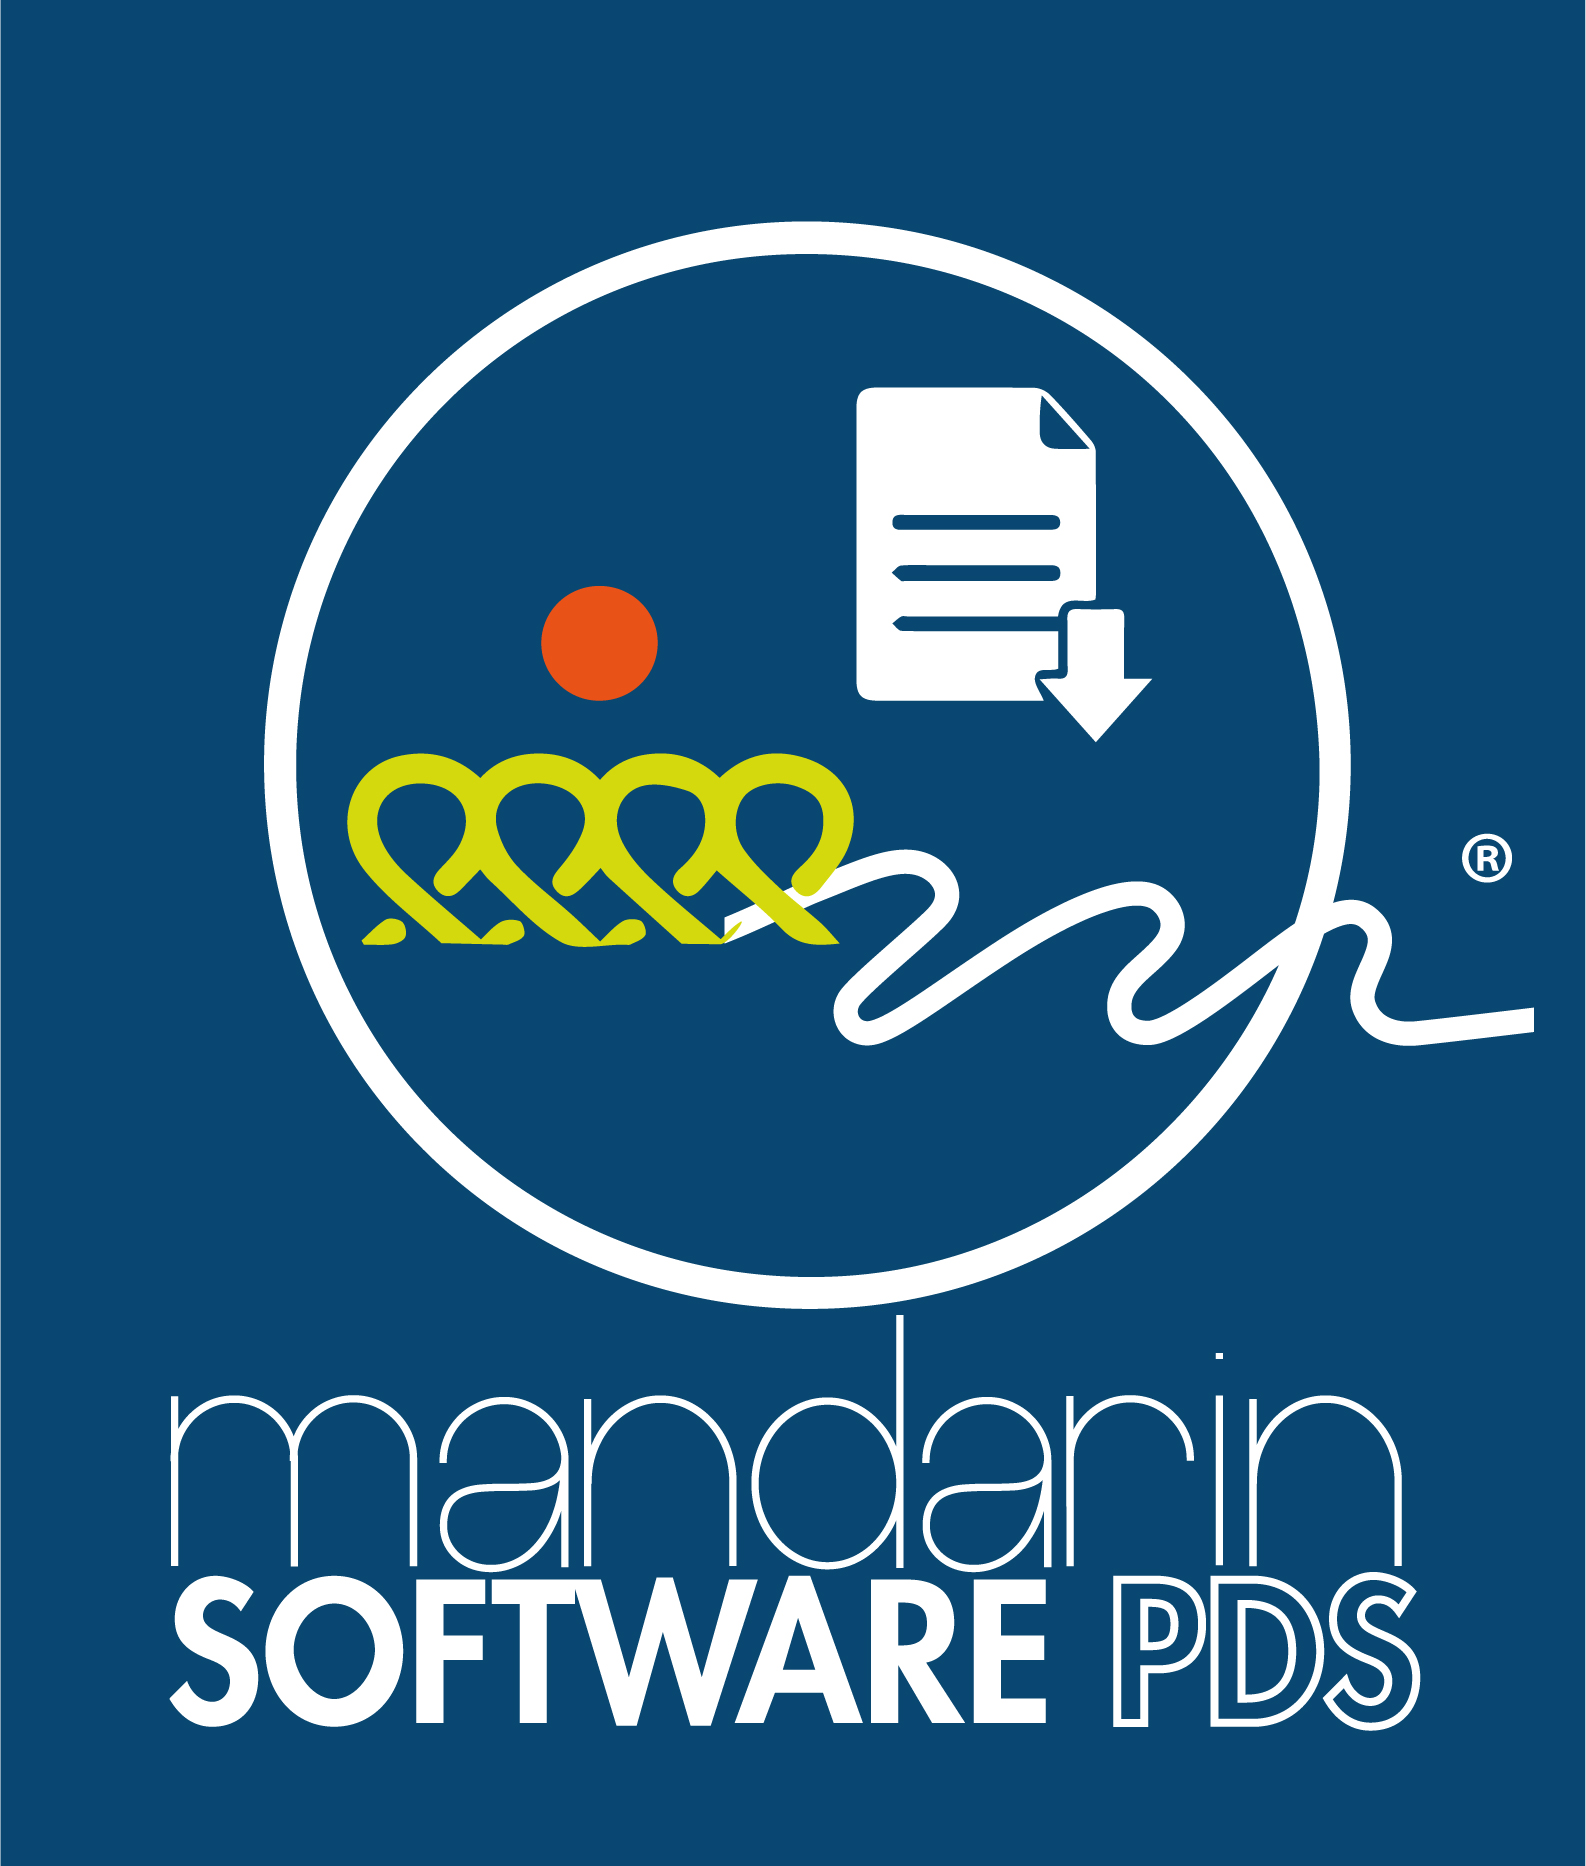 logo-corsi-manuale-software-pds-02